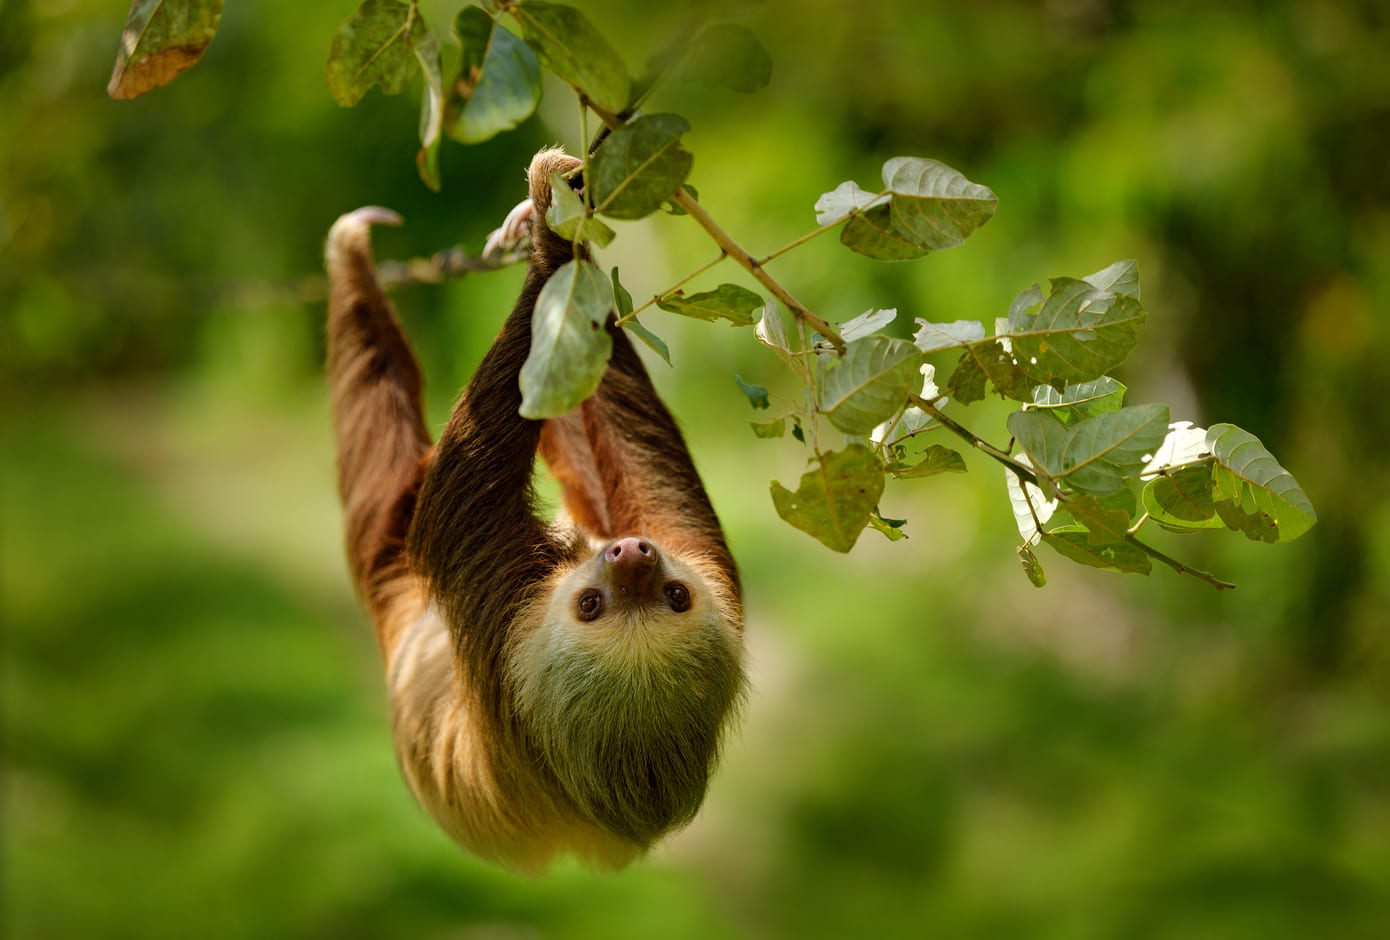 Sloth climbing on the tree in a rainforest.